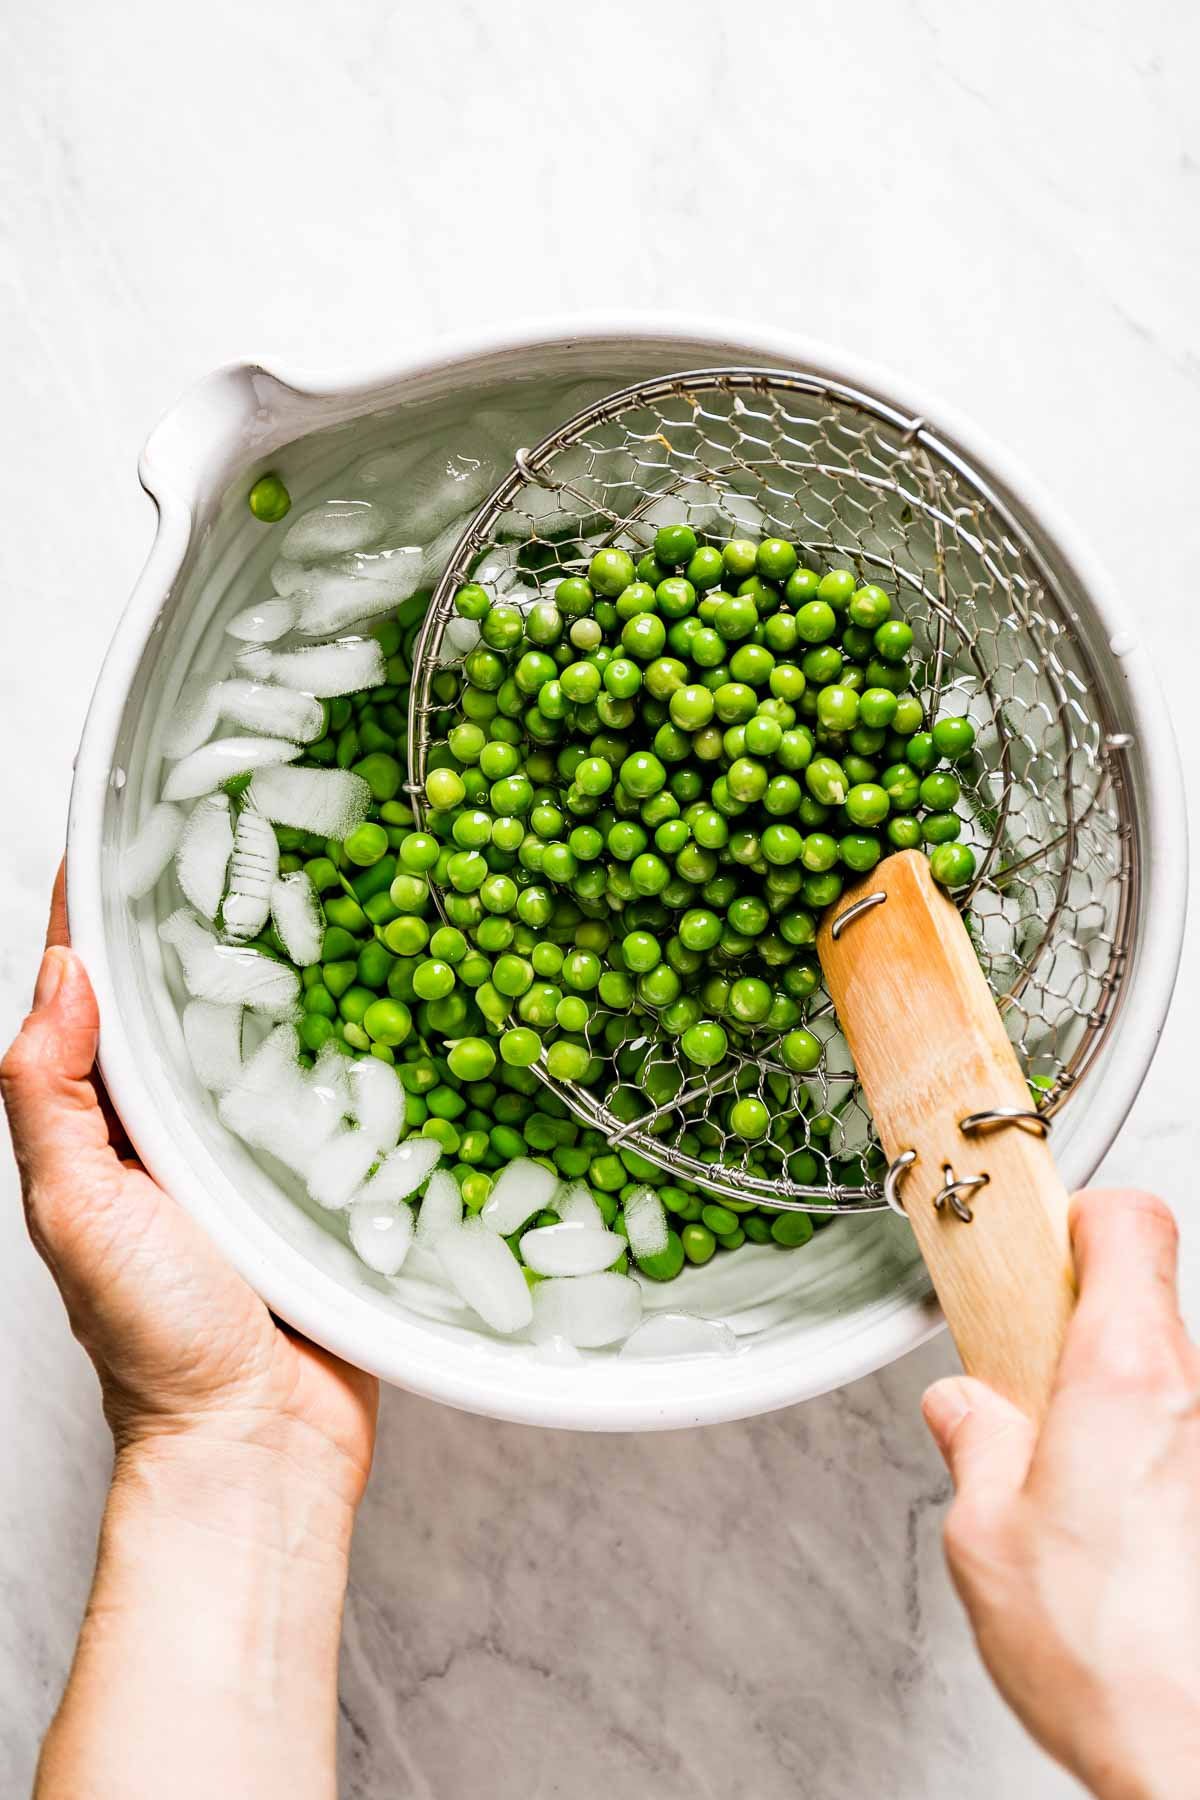 Person placing blanched peas into bowl with ice water